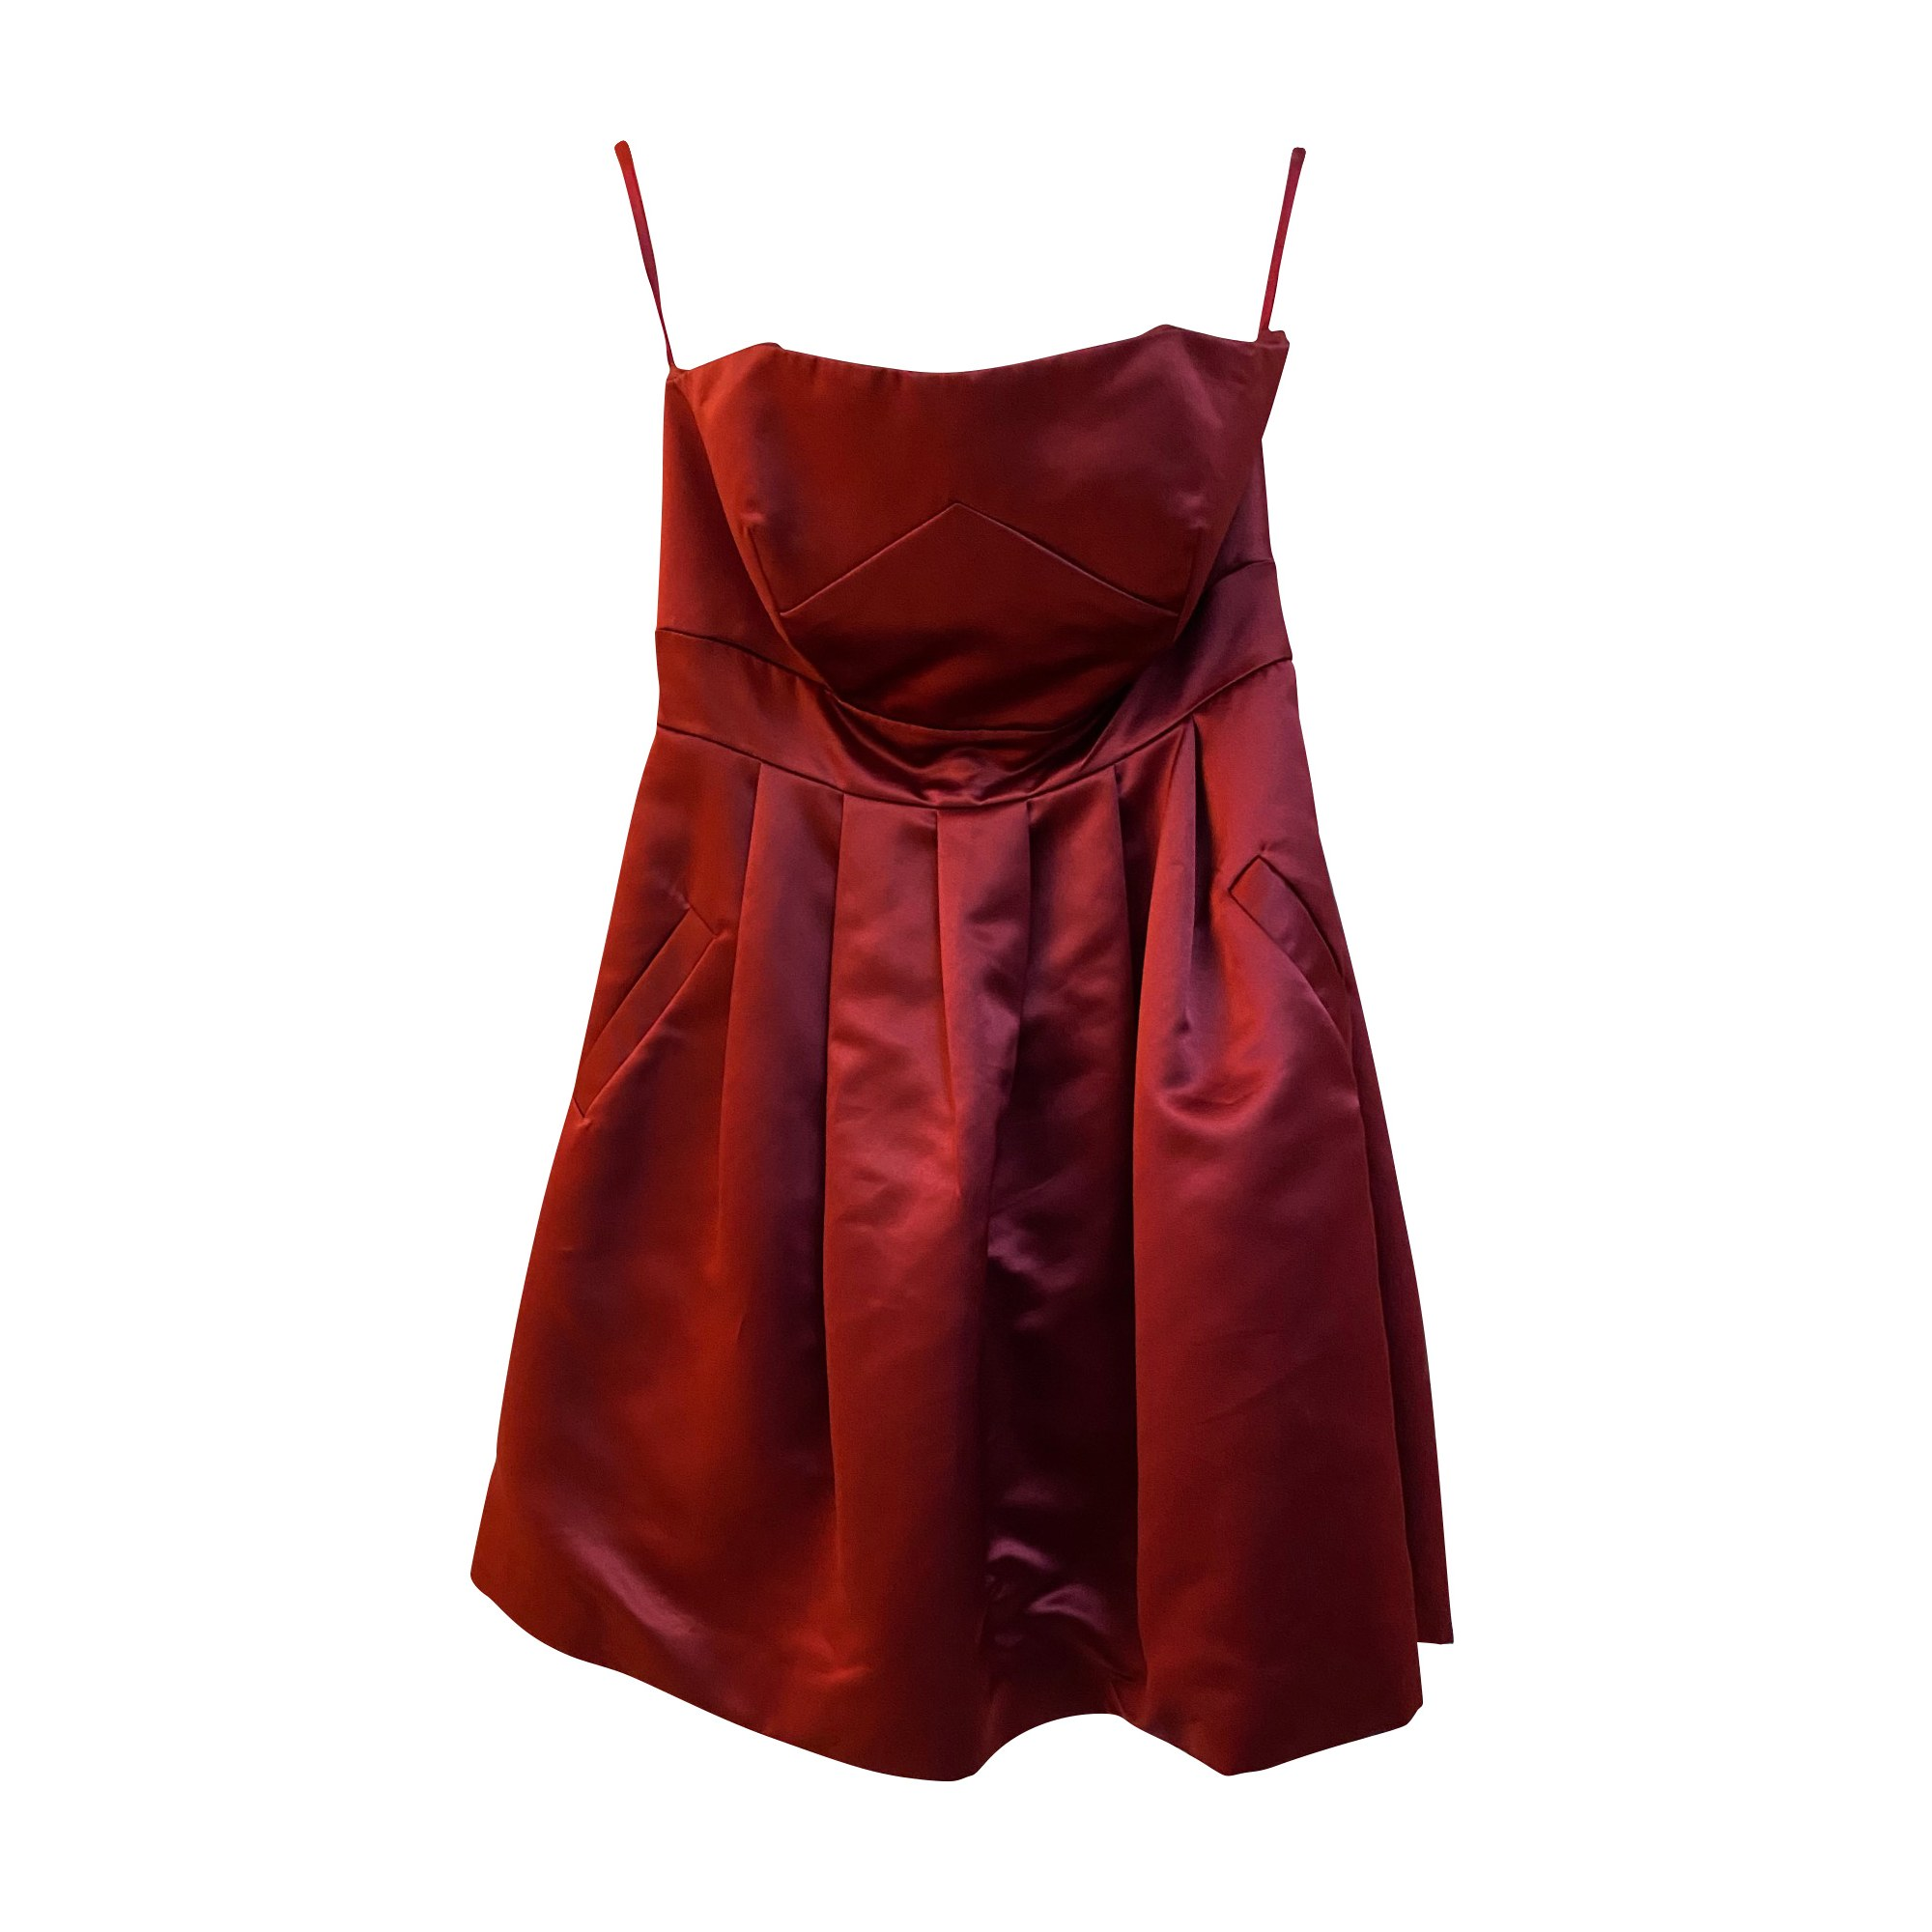 Robe bustier ALAIN MANOUKIAN Rouge, bordeaux